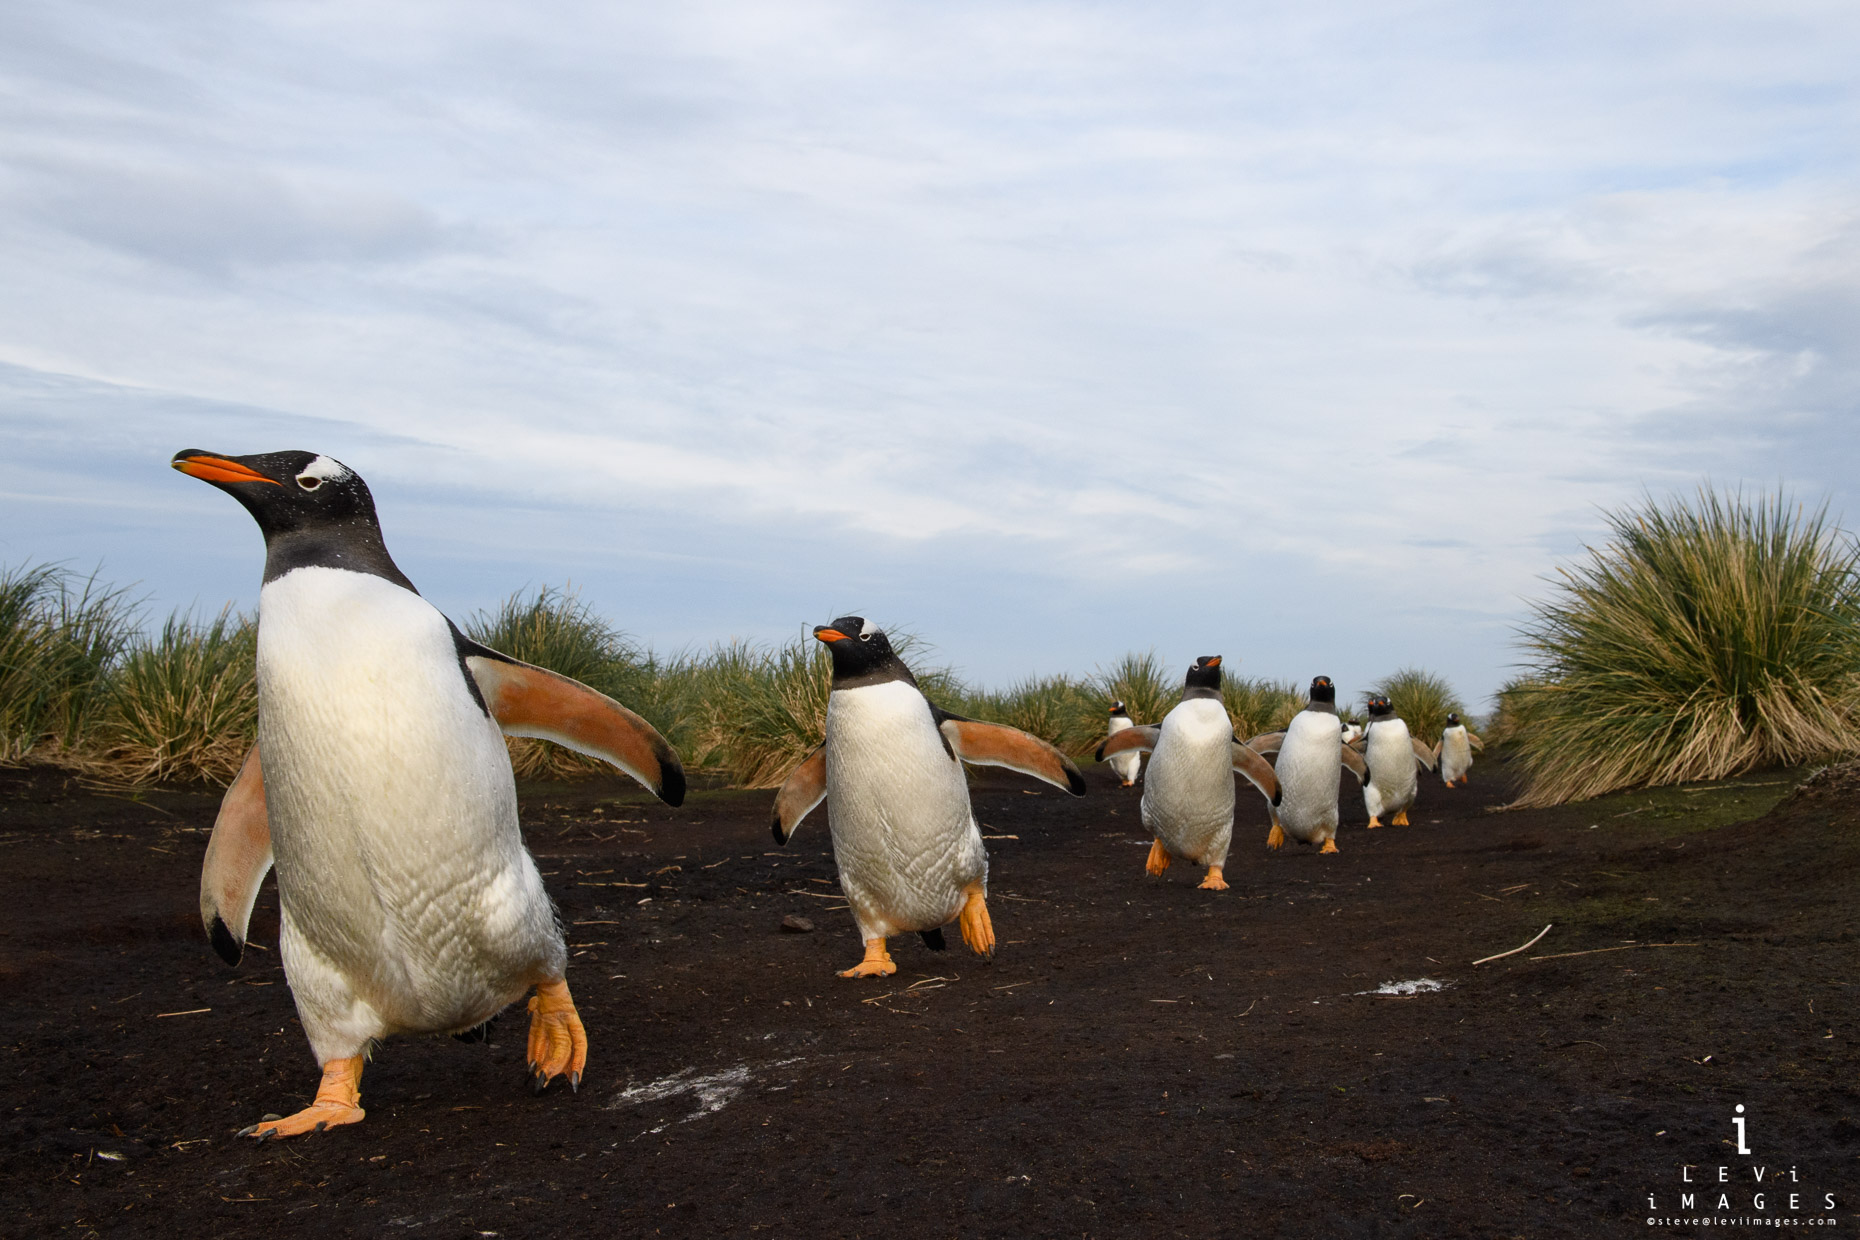 Gentoo penguins (Pygoscelis papua) marching along penguin highway. Sea Lion Island, Falkland Islands